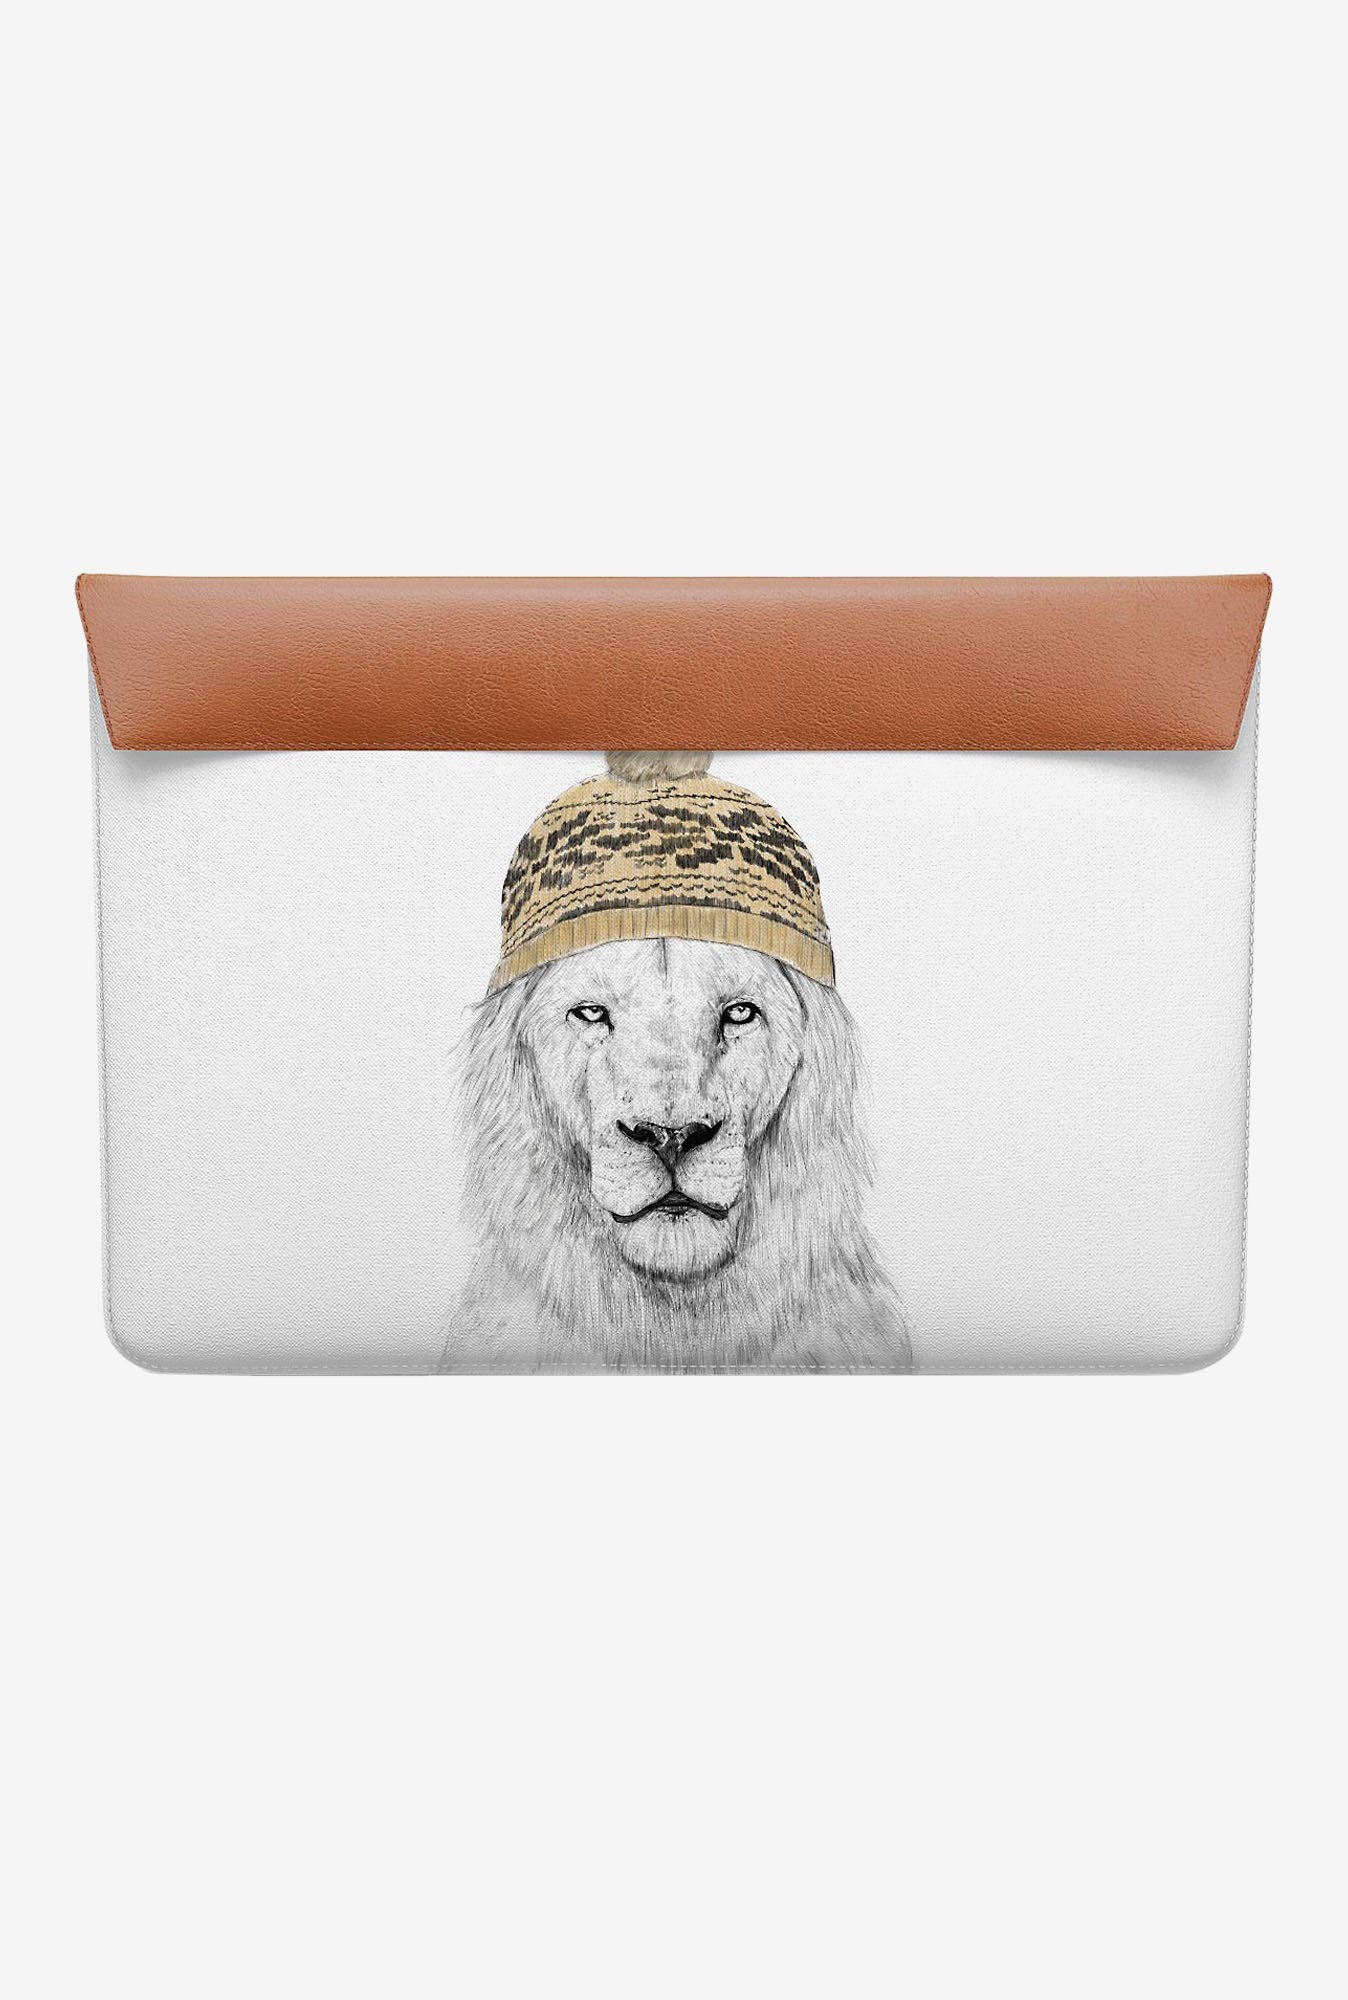 DailyObjects Winter Is Here MacBook Pro 15 Envelope Sleeve